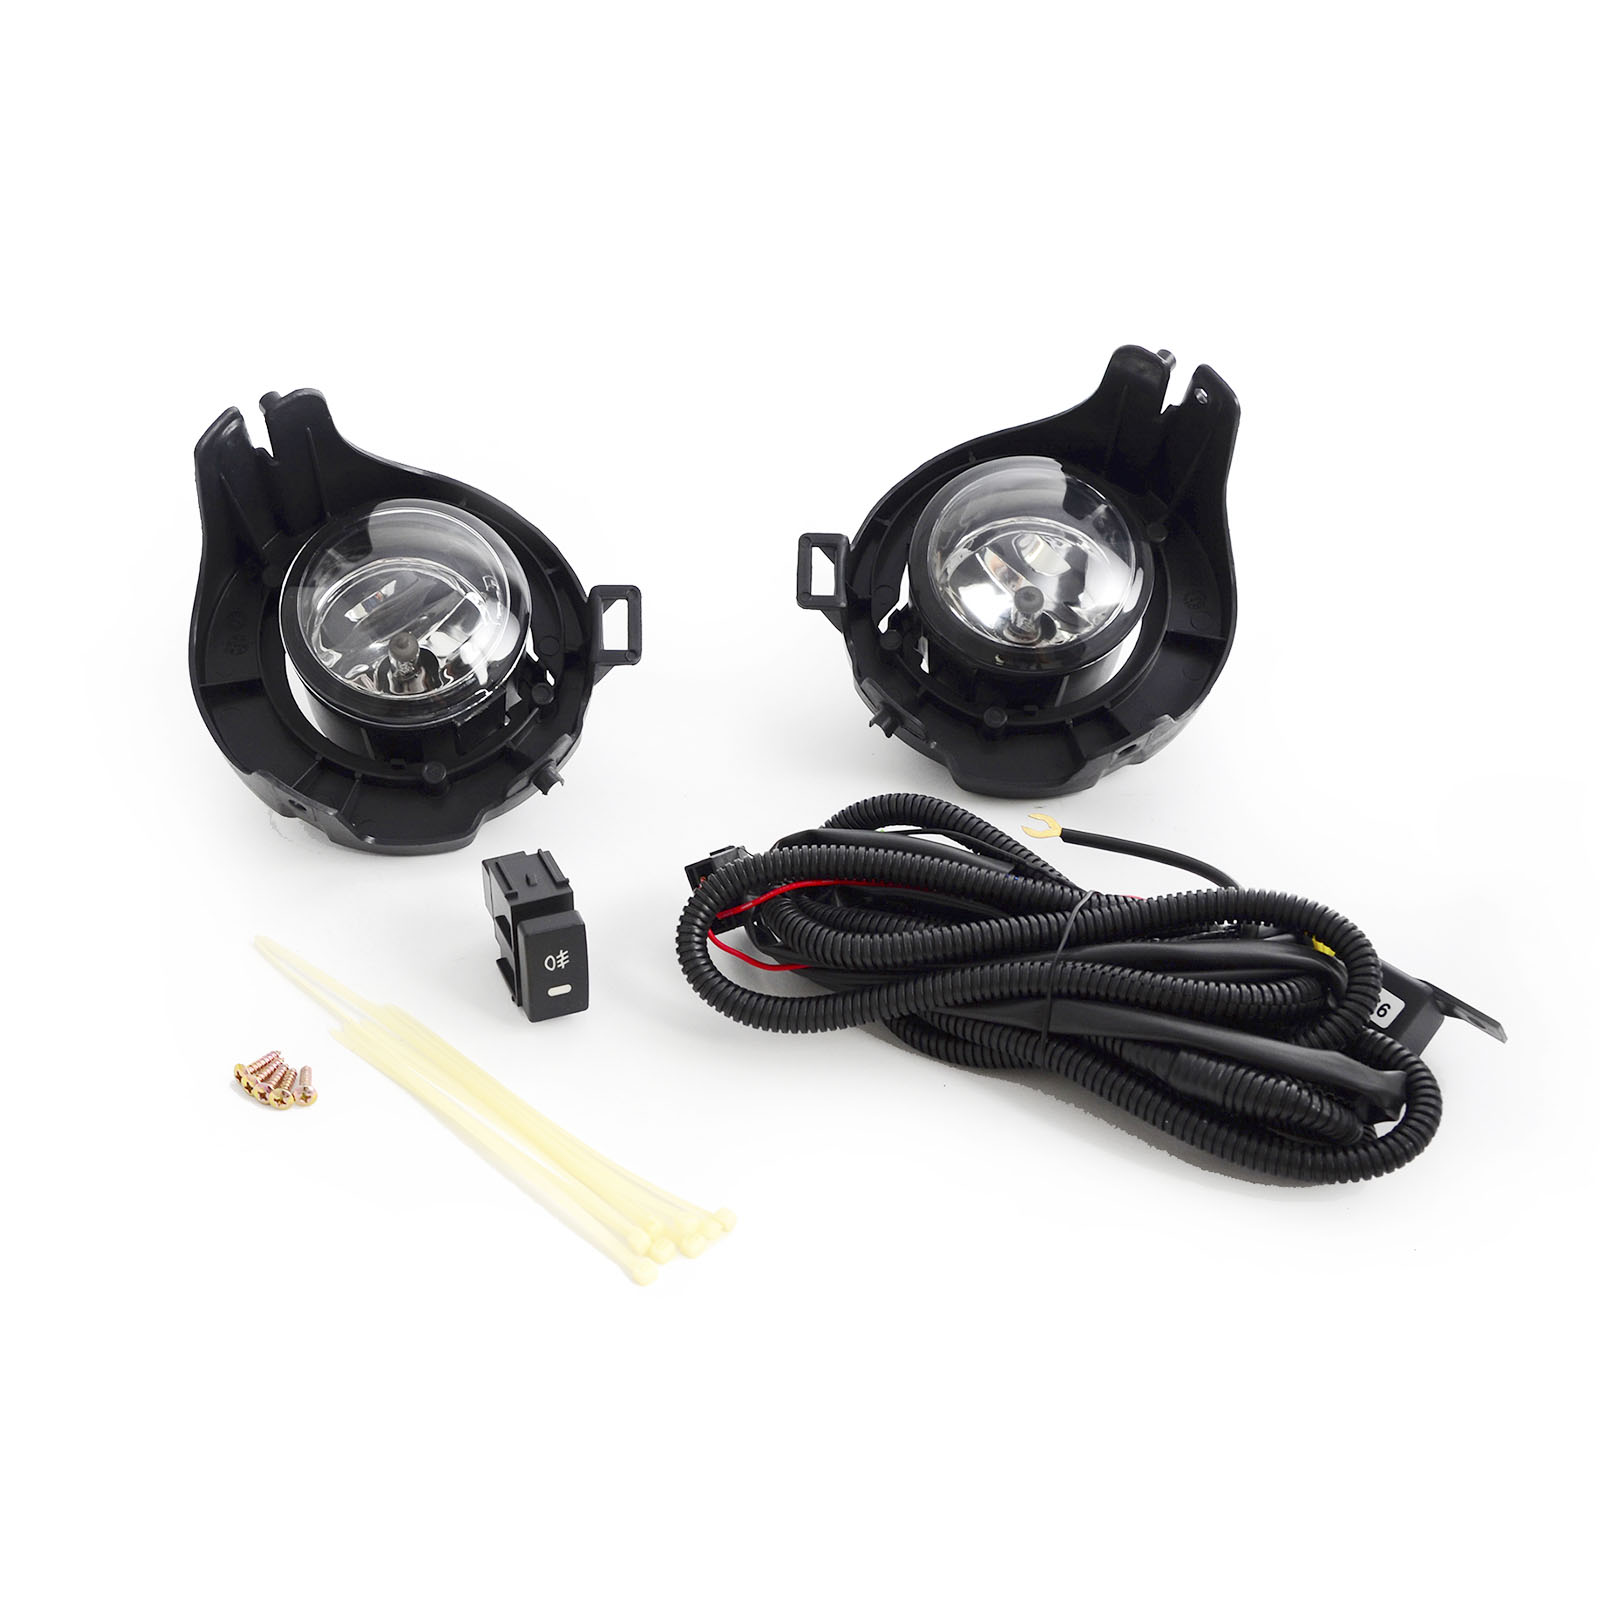 ФОТО For Nissan NAVARA D40 Driving/ Fog Lights Lamps Complete Kit 2005-2014